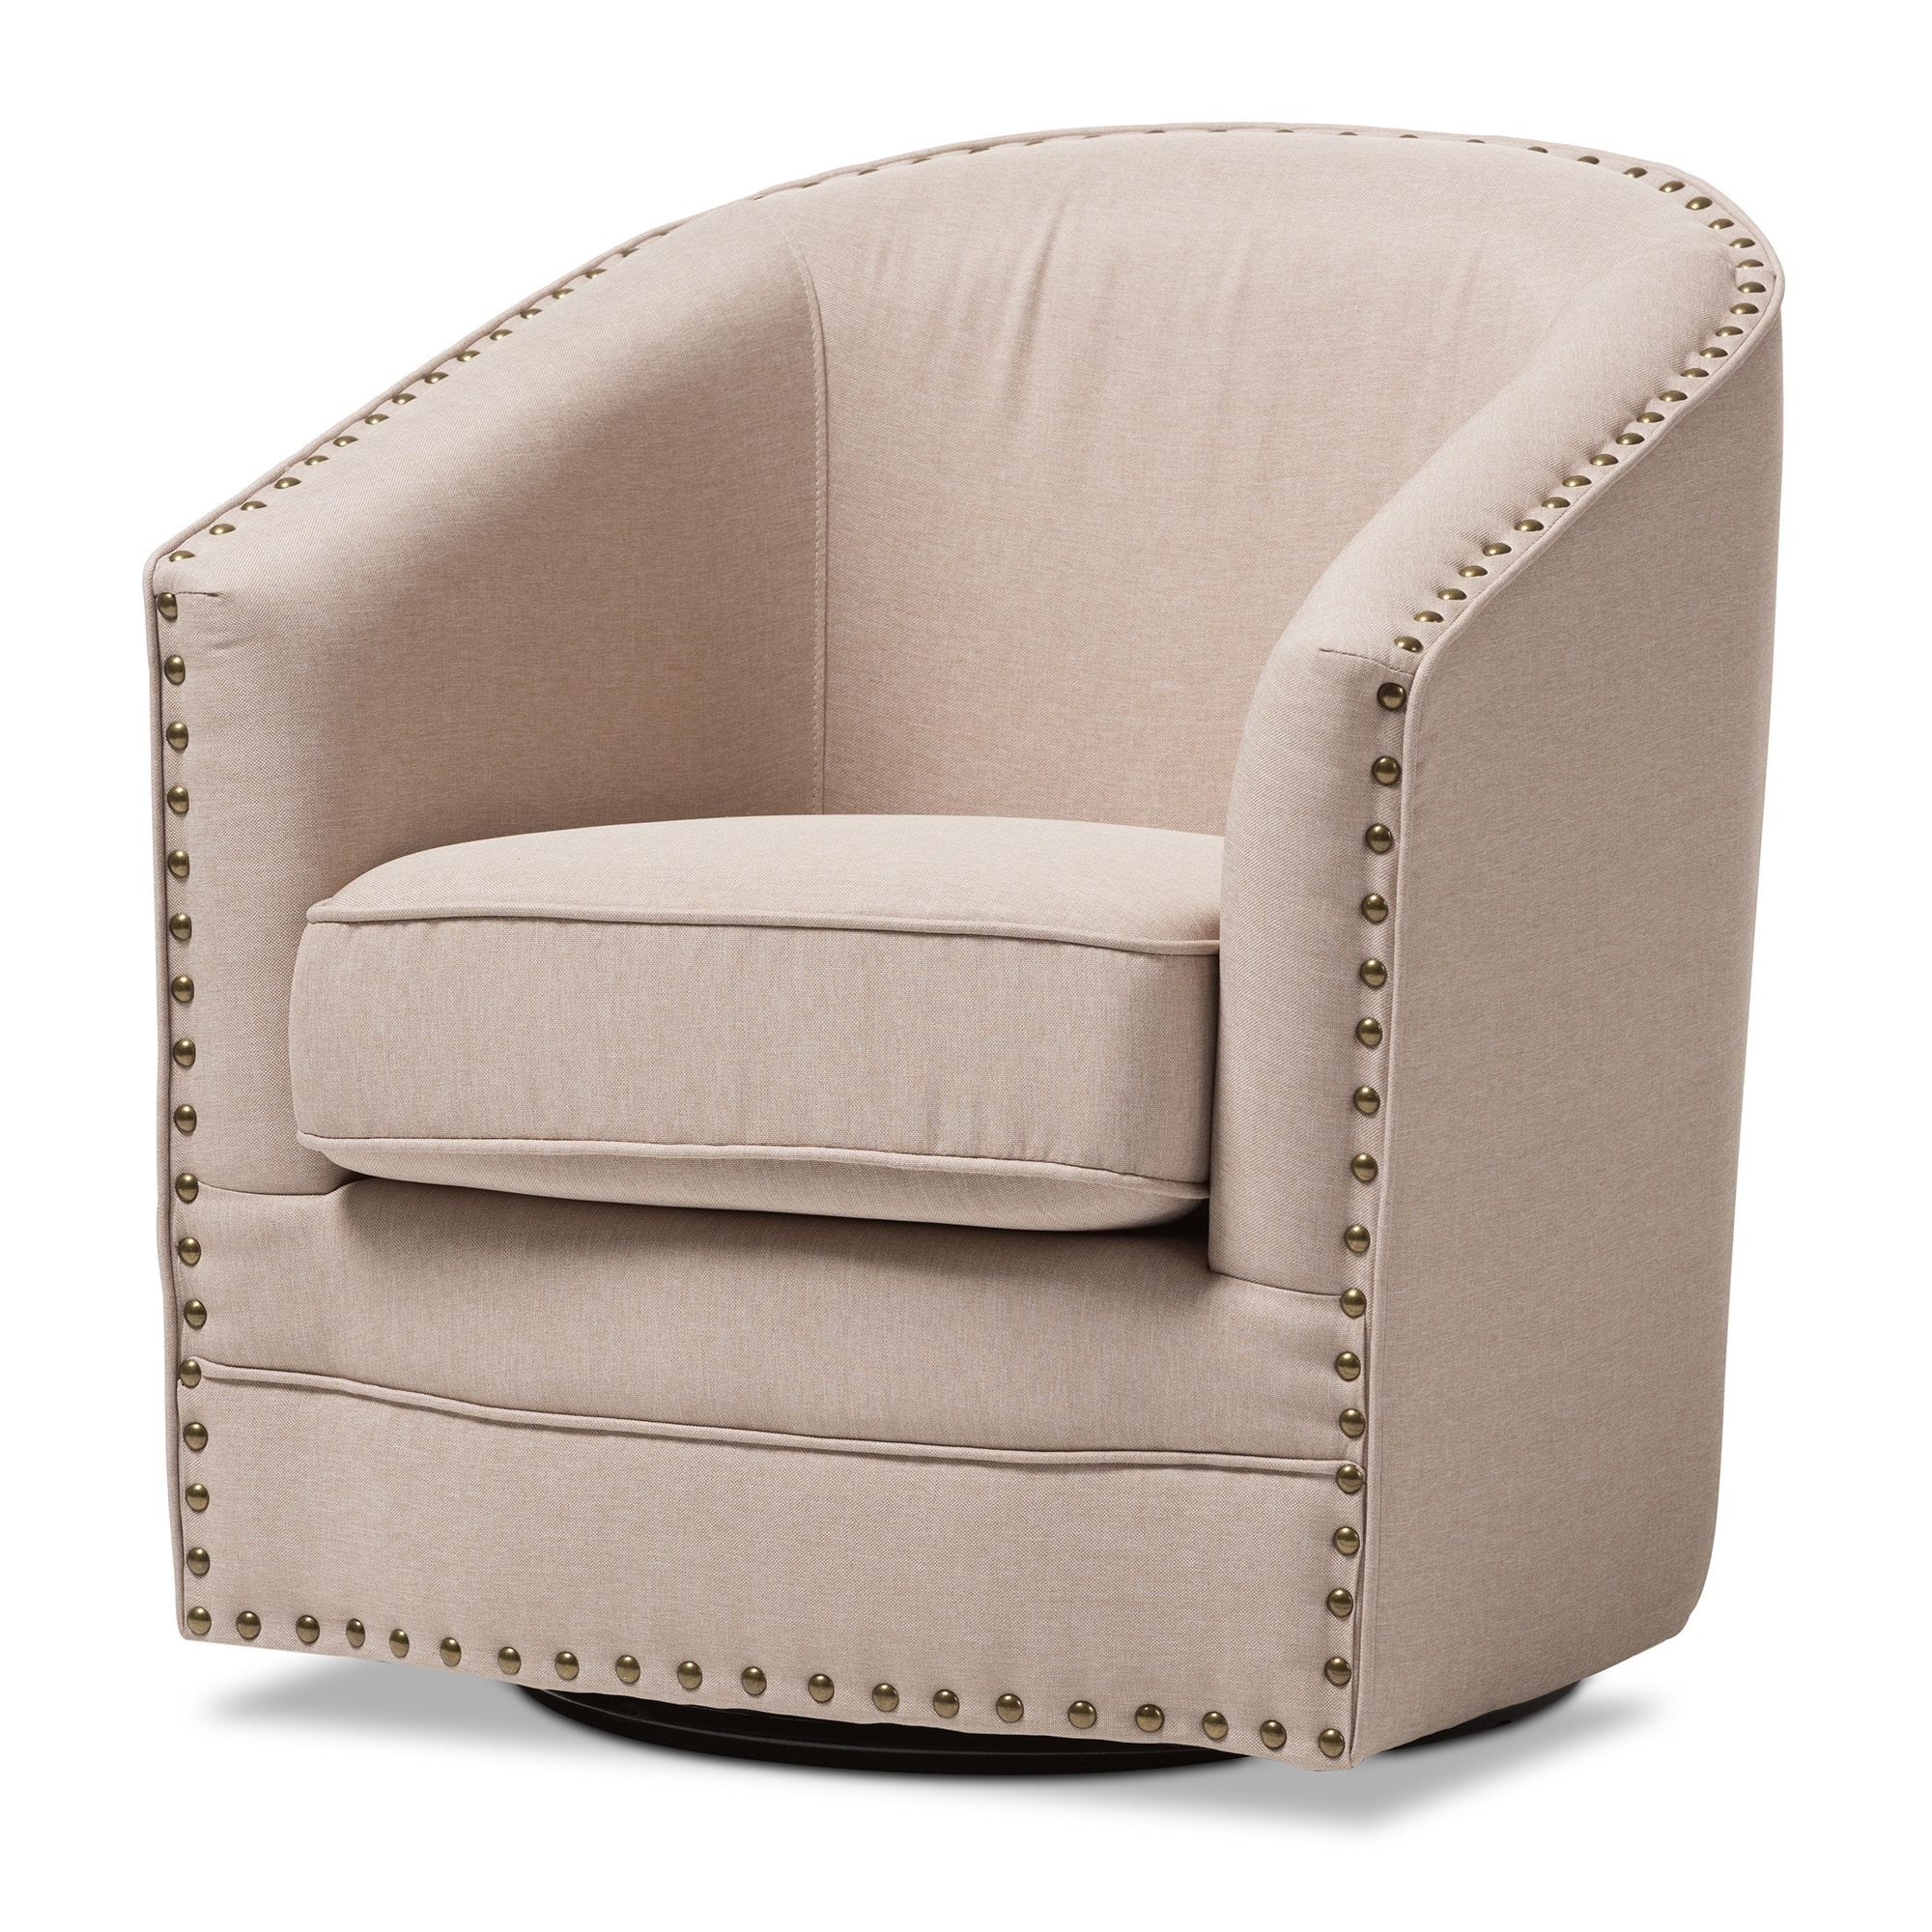 Beau Shop Baxton Studio Porter Contemporary Beige Fabric Upholstered Swivel Tub  Chair   Free Shipping Today   Overstock.com   10354817